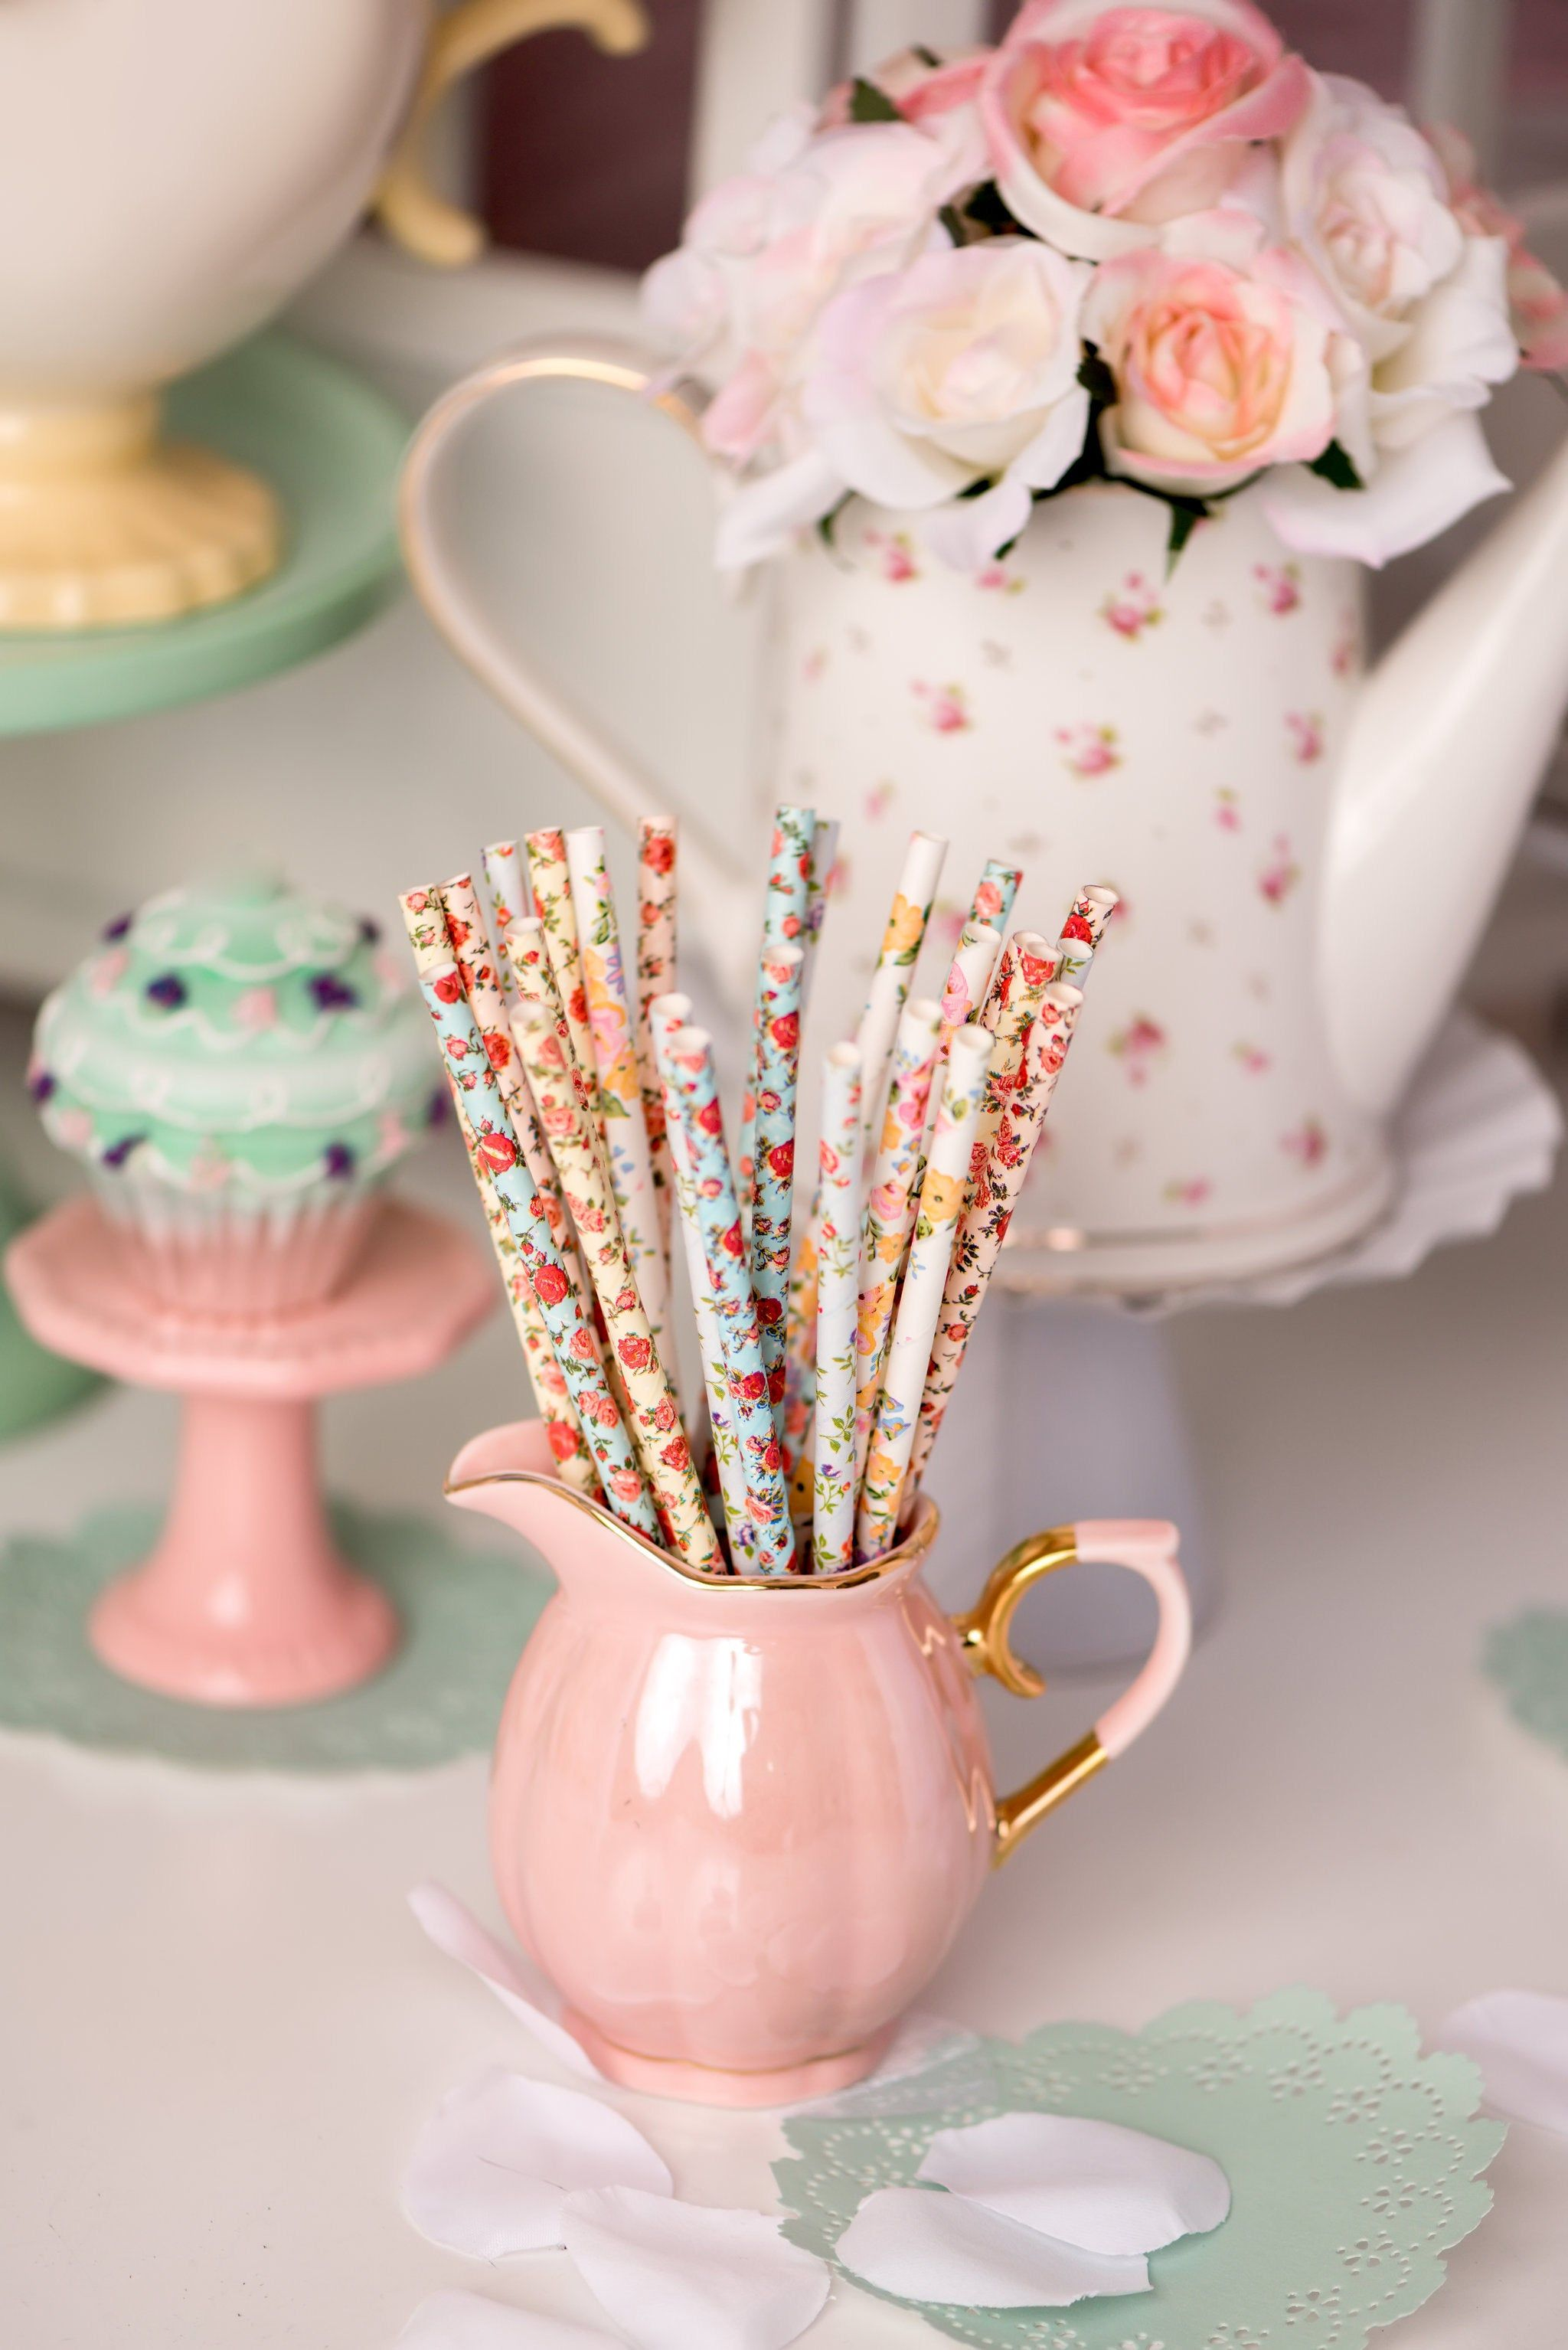 Bridal Shower Tea Party Ideas for a Classic Pre-Wedding Celebration